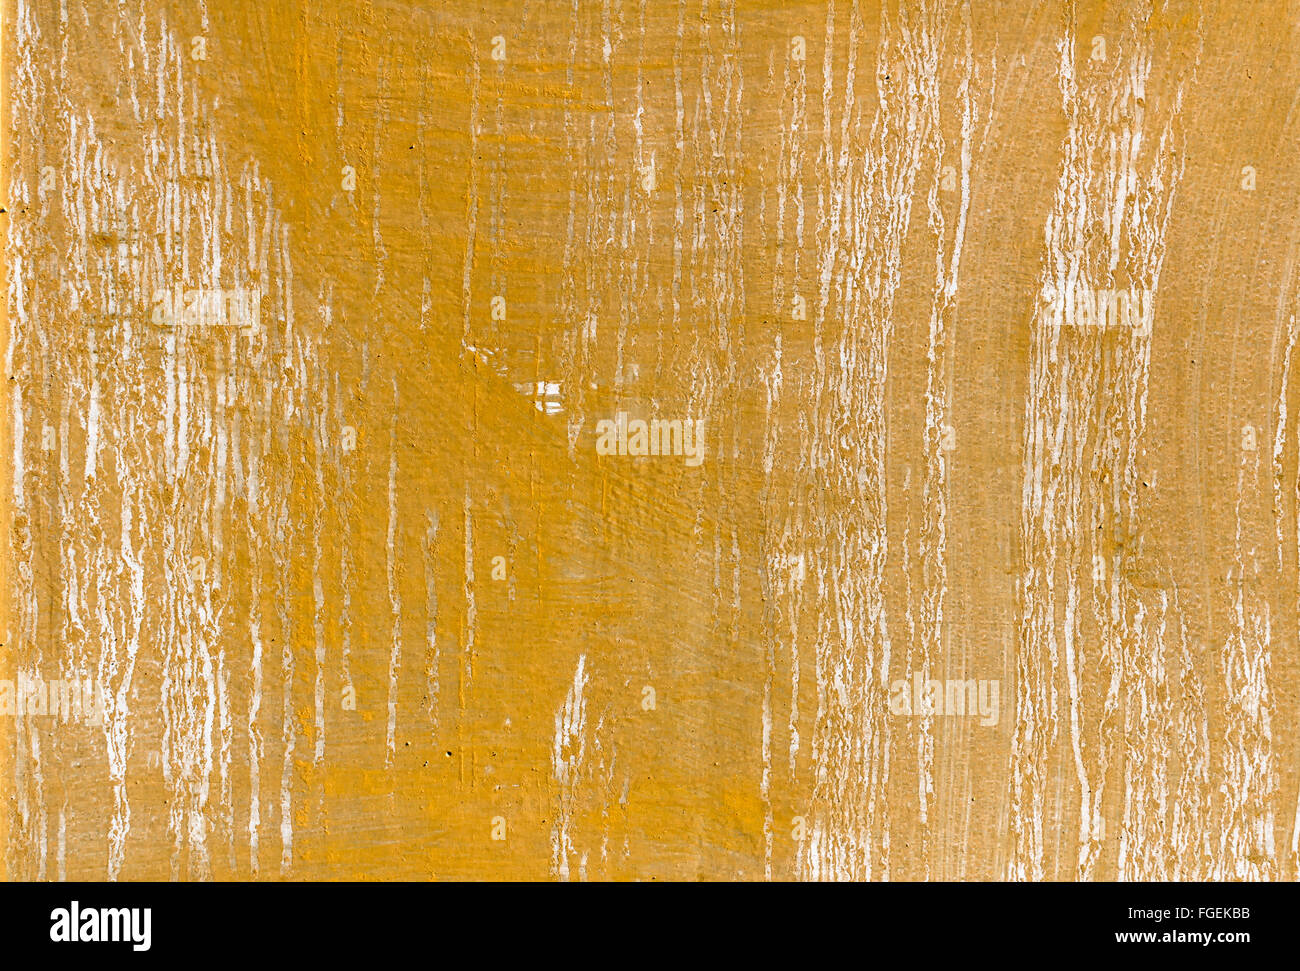 Solid Yellow Background Vintage Worn Distressed Texture Gold Wall Paint Or Smeared Old Paper